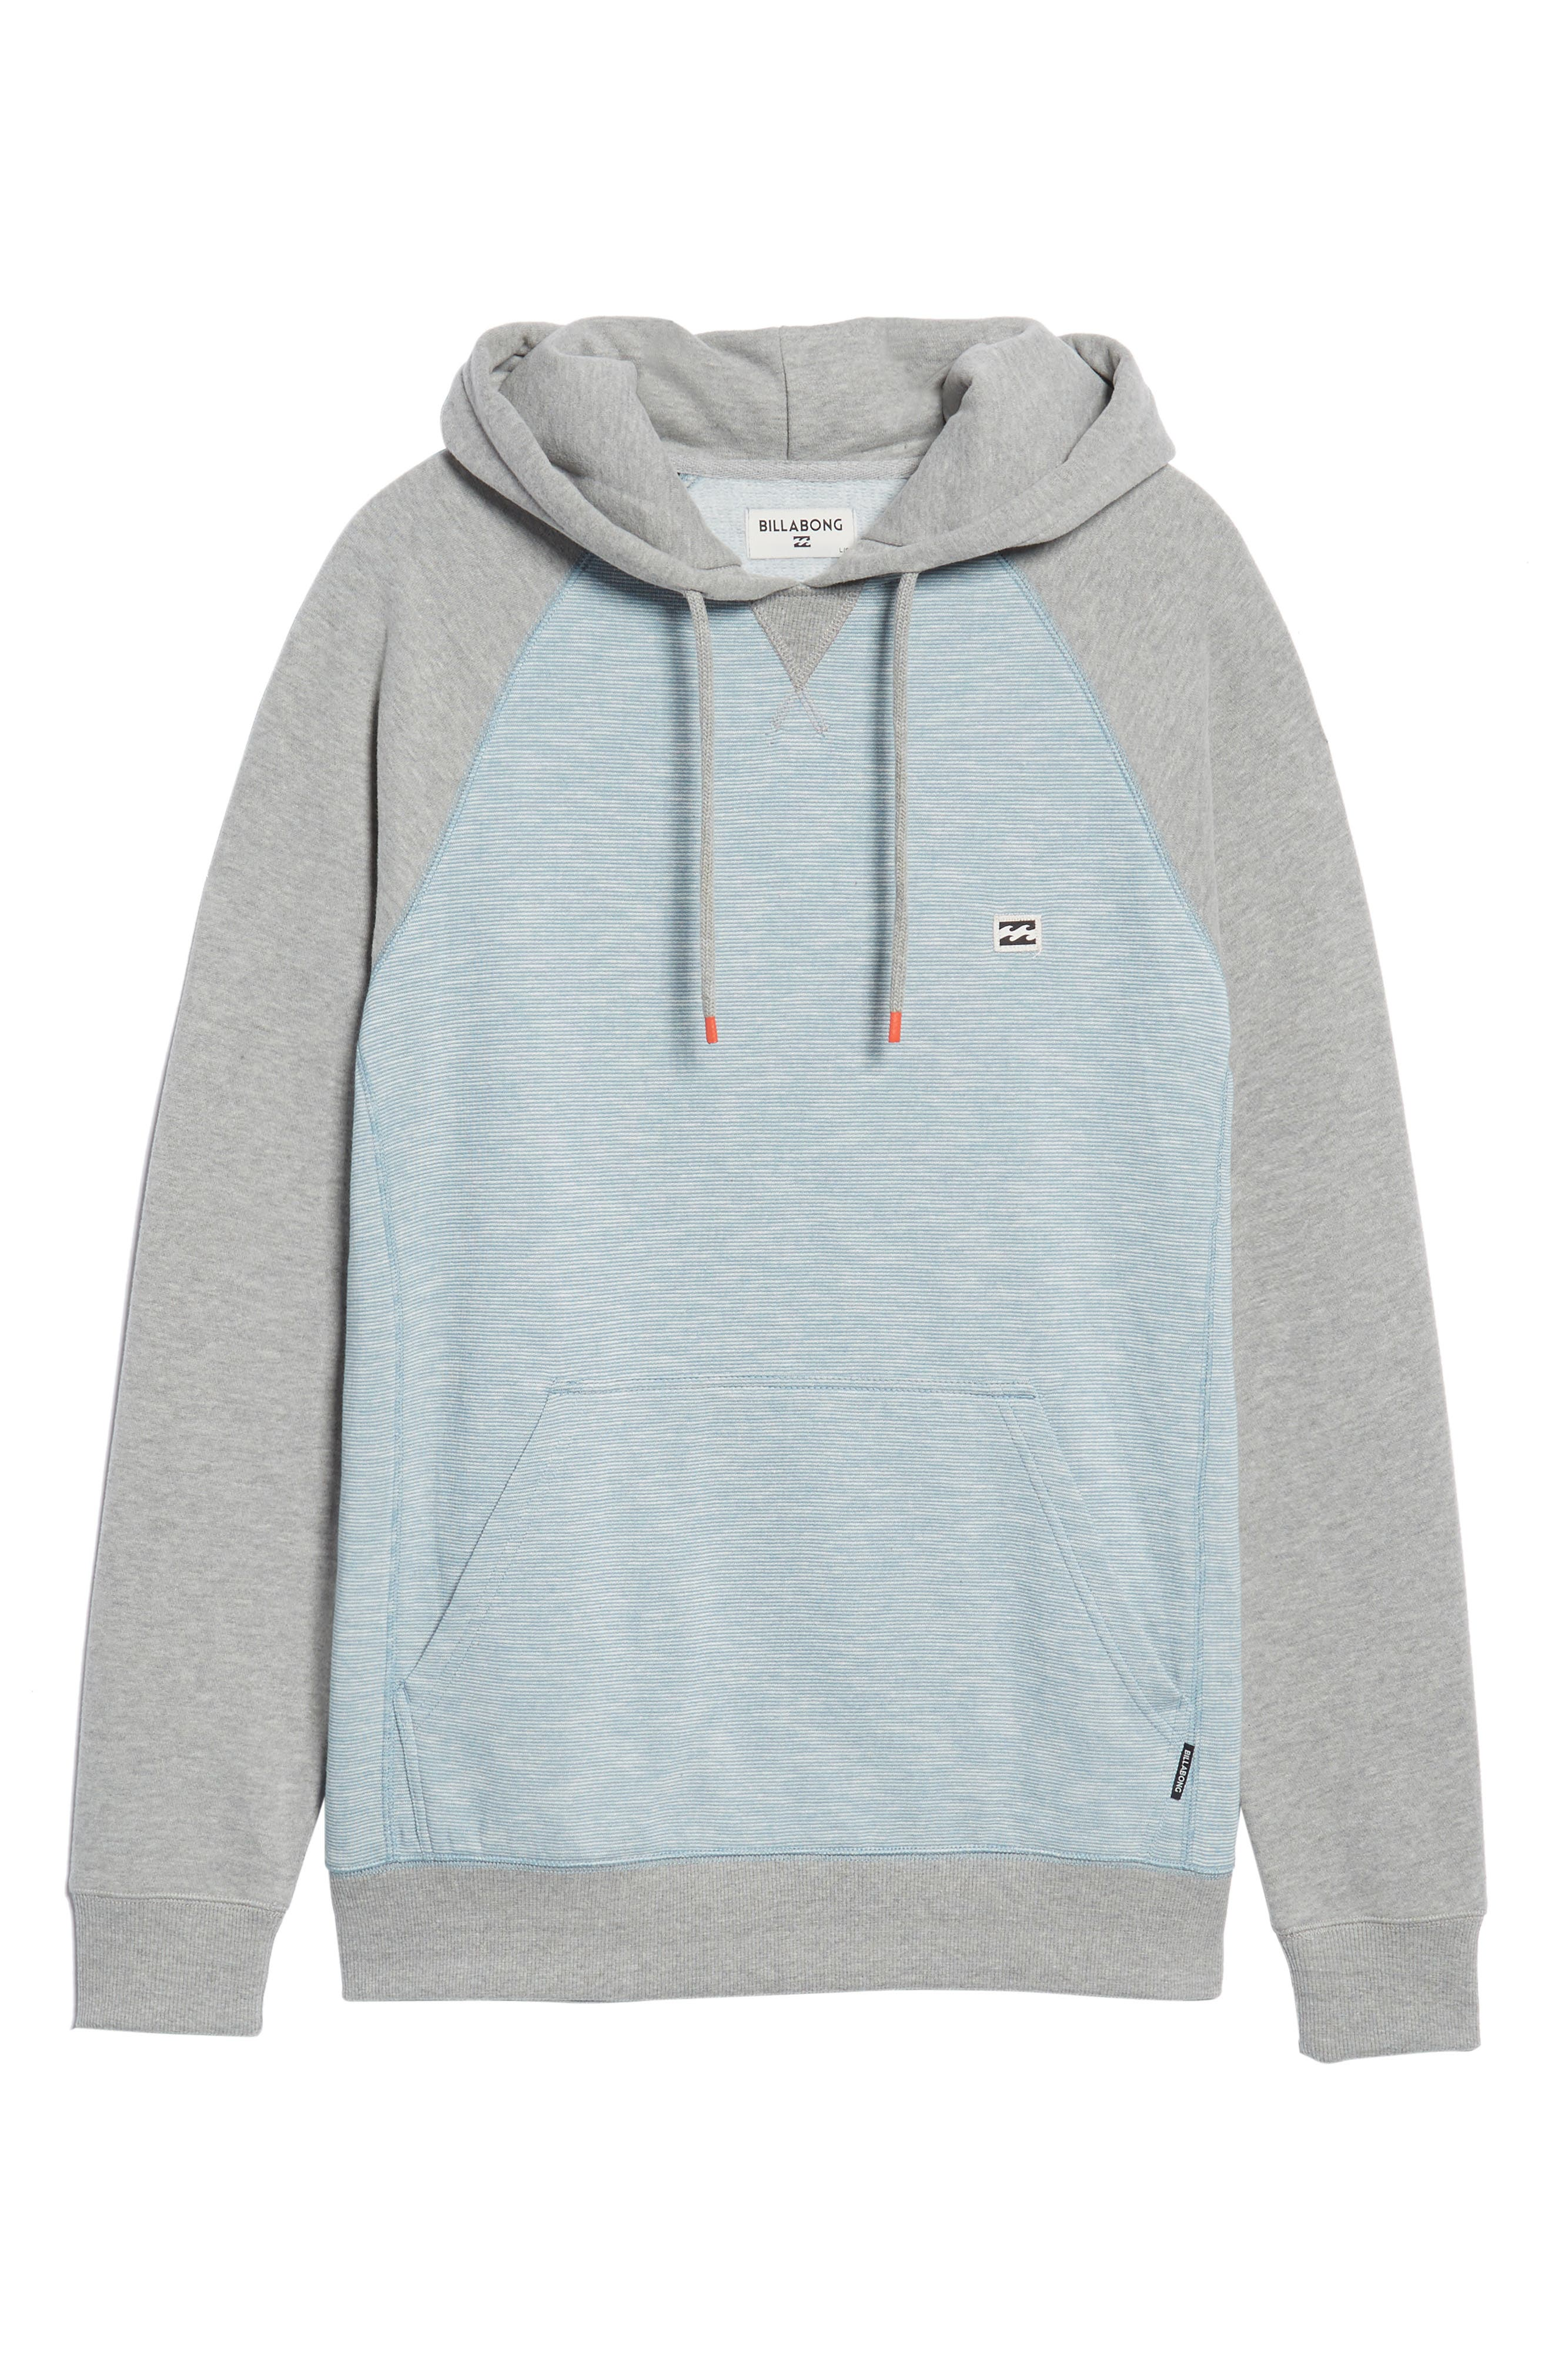 Balance Hoodie,                             Alternate thumbnail 12, color,